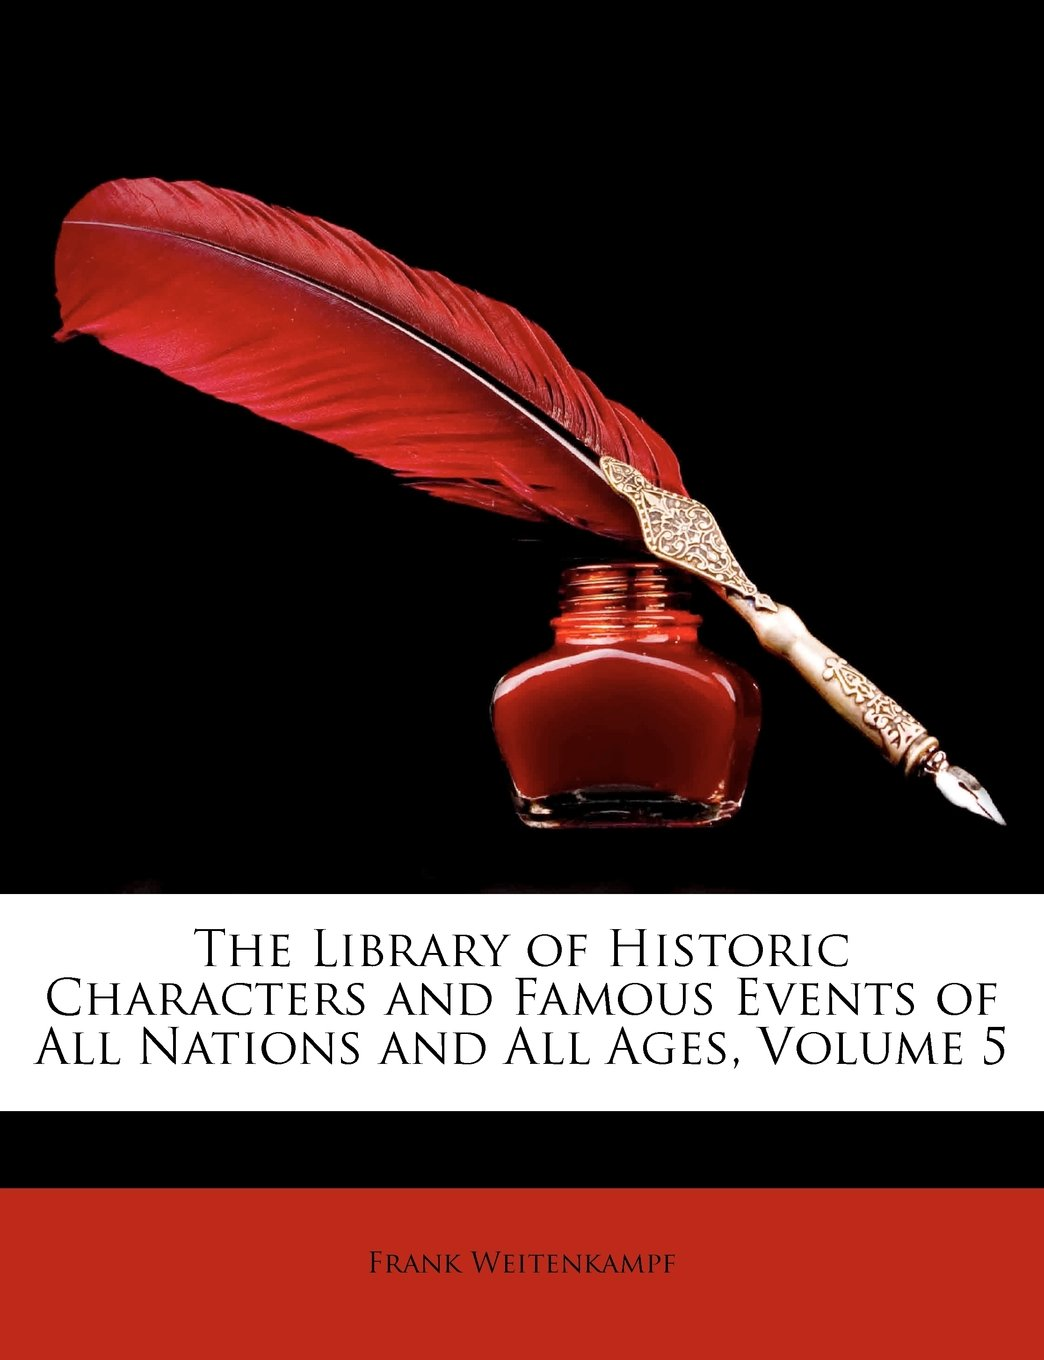 Download The Library of Historic Characters and Famous Events of All Nations and All Ages, Volume 5 pdf